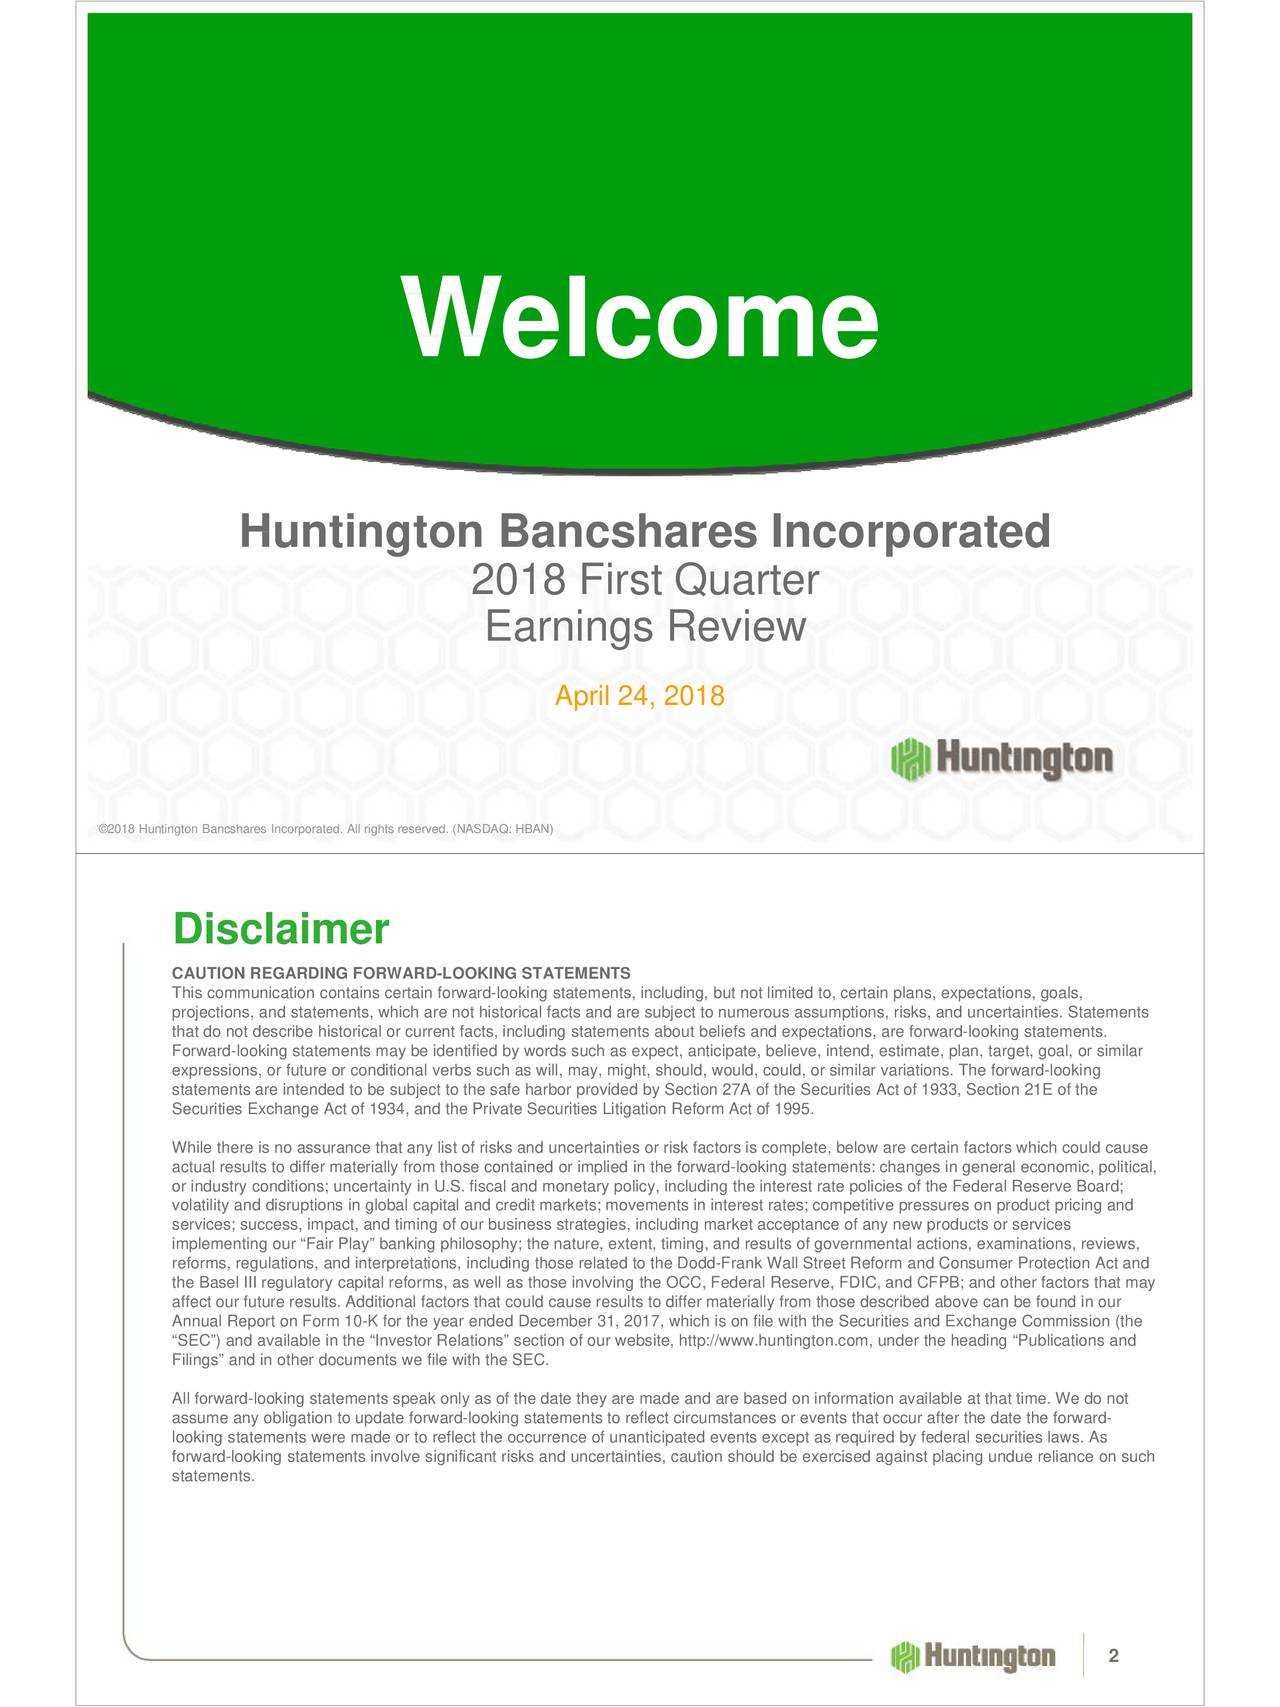 """Huntington Bancshares Incorporated 2018 First Quarter Earnings Review April 24, 2018 ©2018 Huntington Bancshares Incorporated. All rights reserved. (NASDAQ: HBAN) Disclaimer CAUTION REGARDING FORWARD-LOOKING STATEMENTS This communication contains certain forward-looking statements, including, but not limited to, certain plans, expectations, goals, projections, and statements, which are not historical facts and are subject to numerous assumptions, risks, and uncertainties. Statements that do not describe historical or current facts, including statements about beliefs and expectations, are forward-looking statements. Forward-looking statements may be identified by words such as expect, anticipate, believe, intend, estimate, plan, target, goal, or similar expressions, or future or conditional verbs such as will, may, might, should, would, could, or similar variations. The forward-looking statements are intended to be subject to the safe harbor provided by Section 27A of the Securities Act of 1933, Section 21E of the Securities Exchange Act of 1934, and the Private Securities Litigation Reform Act of 1995. While there is no assurance that any list of risks and uncertainties or risk factors is complete, below are certain factors which could cause actual results to differ materially from those contained or implied in the forward-looking statements: changes in general economic, political, volatility and disruptions in global capital and credit markets; movements in interest rates; competitive pressures on product pricing and services; success, impact, and timing of our business strategies, including market acceptance of any new products or services implementing our """"Fair Play"""" banking philosophy; the nature, extent, timing, and results of governmental actions, examinations, reviews, reforms, regulations, and interpretations, including those related to the Dodd-Frank Wall Street Reform and Consumer Protection Act and the Basel III regulatory capital reforms, as well as thos"""